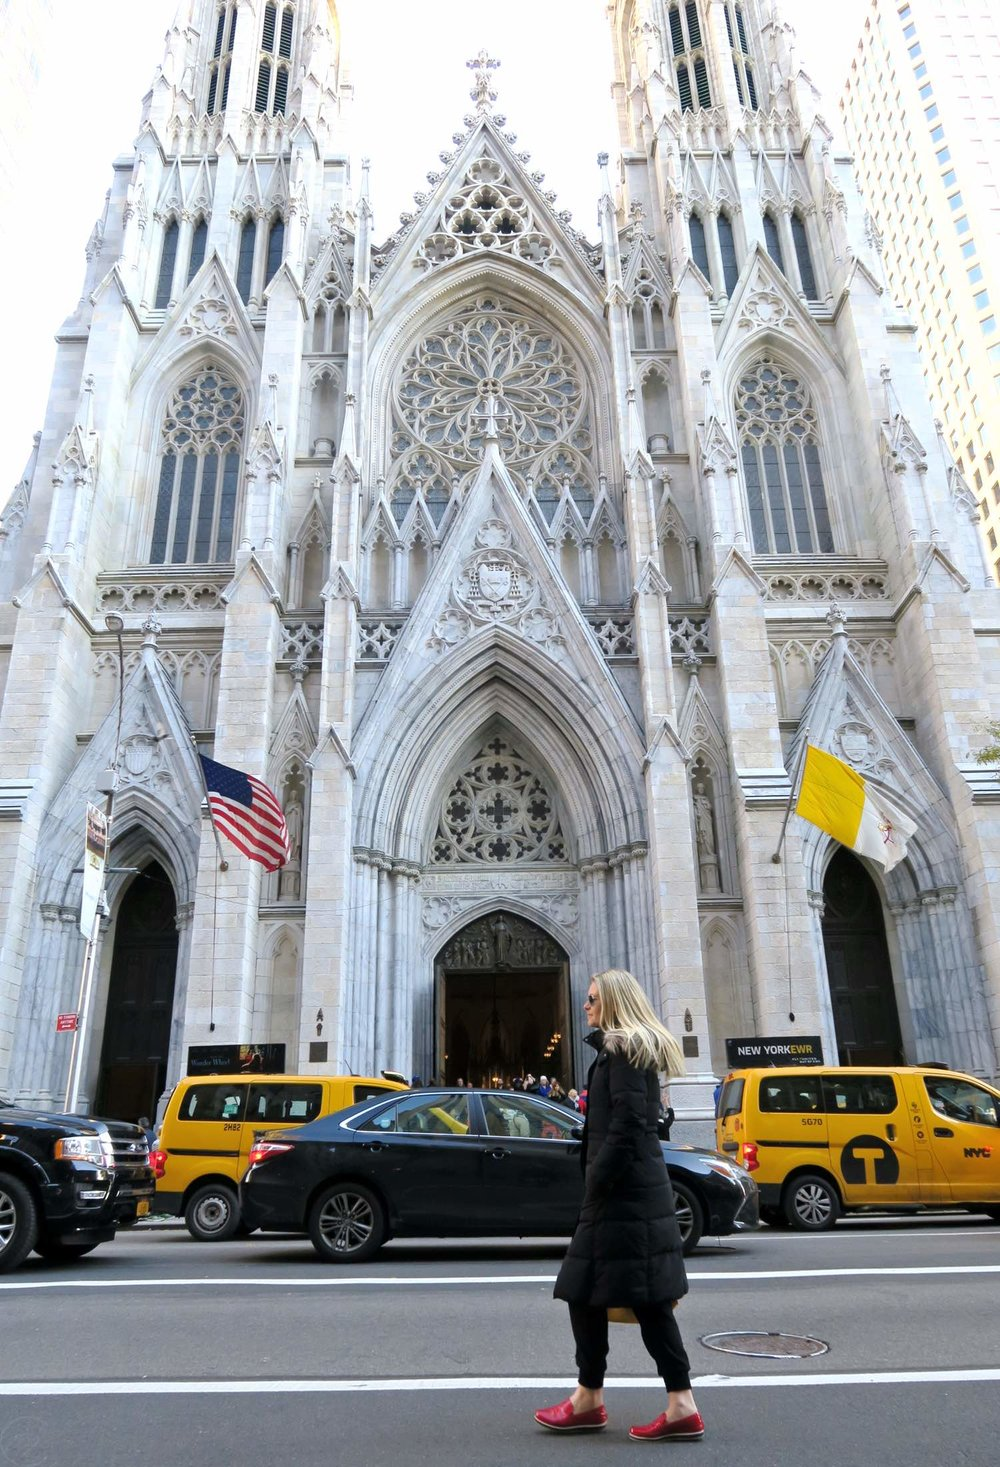 famous-locations-tv-shows-movies-nyc-character-32-c32-new-york-manhattan-travel-st-patricks-cathedral